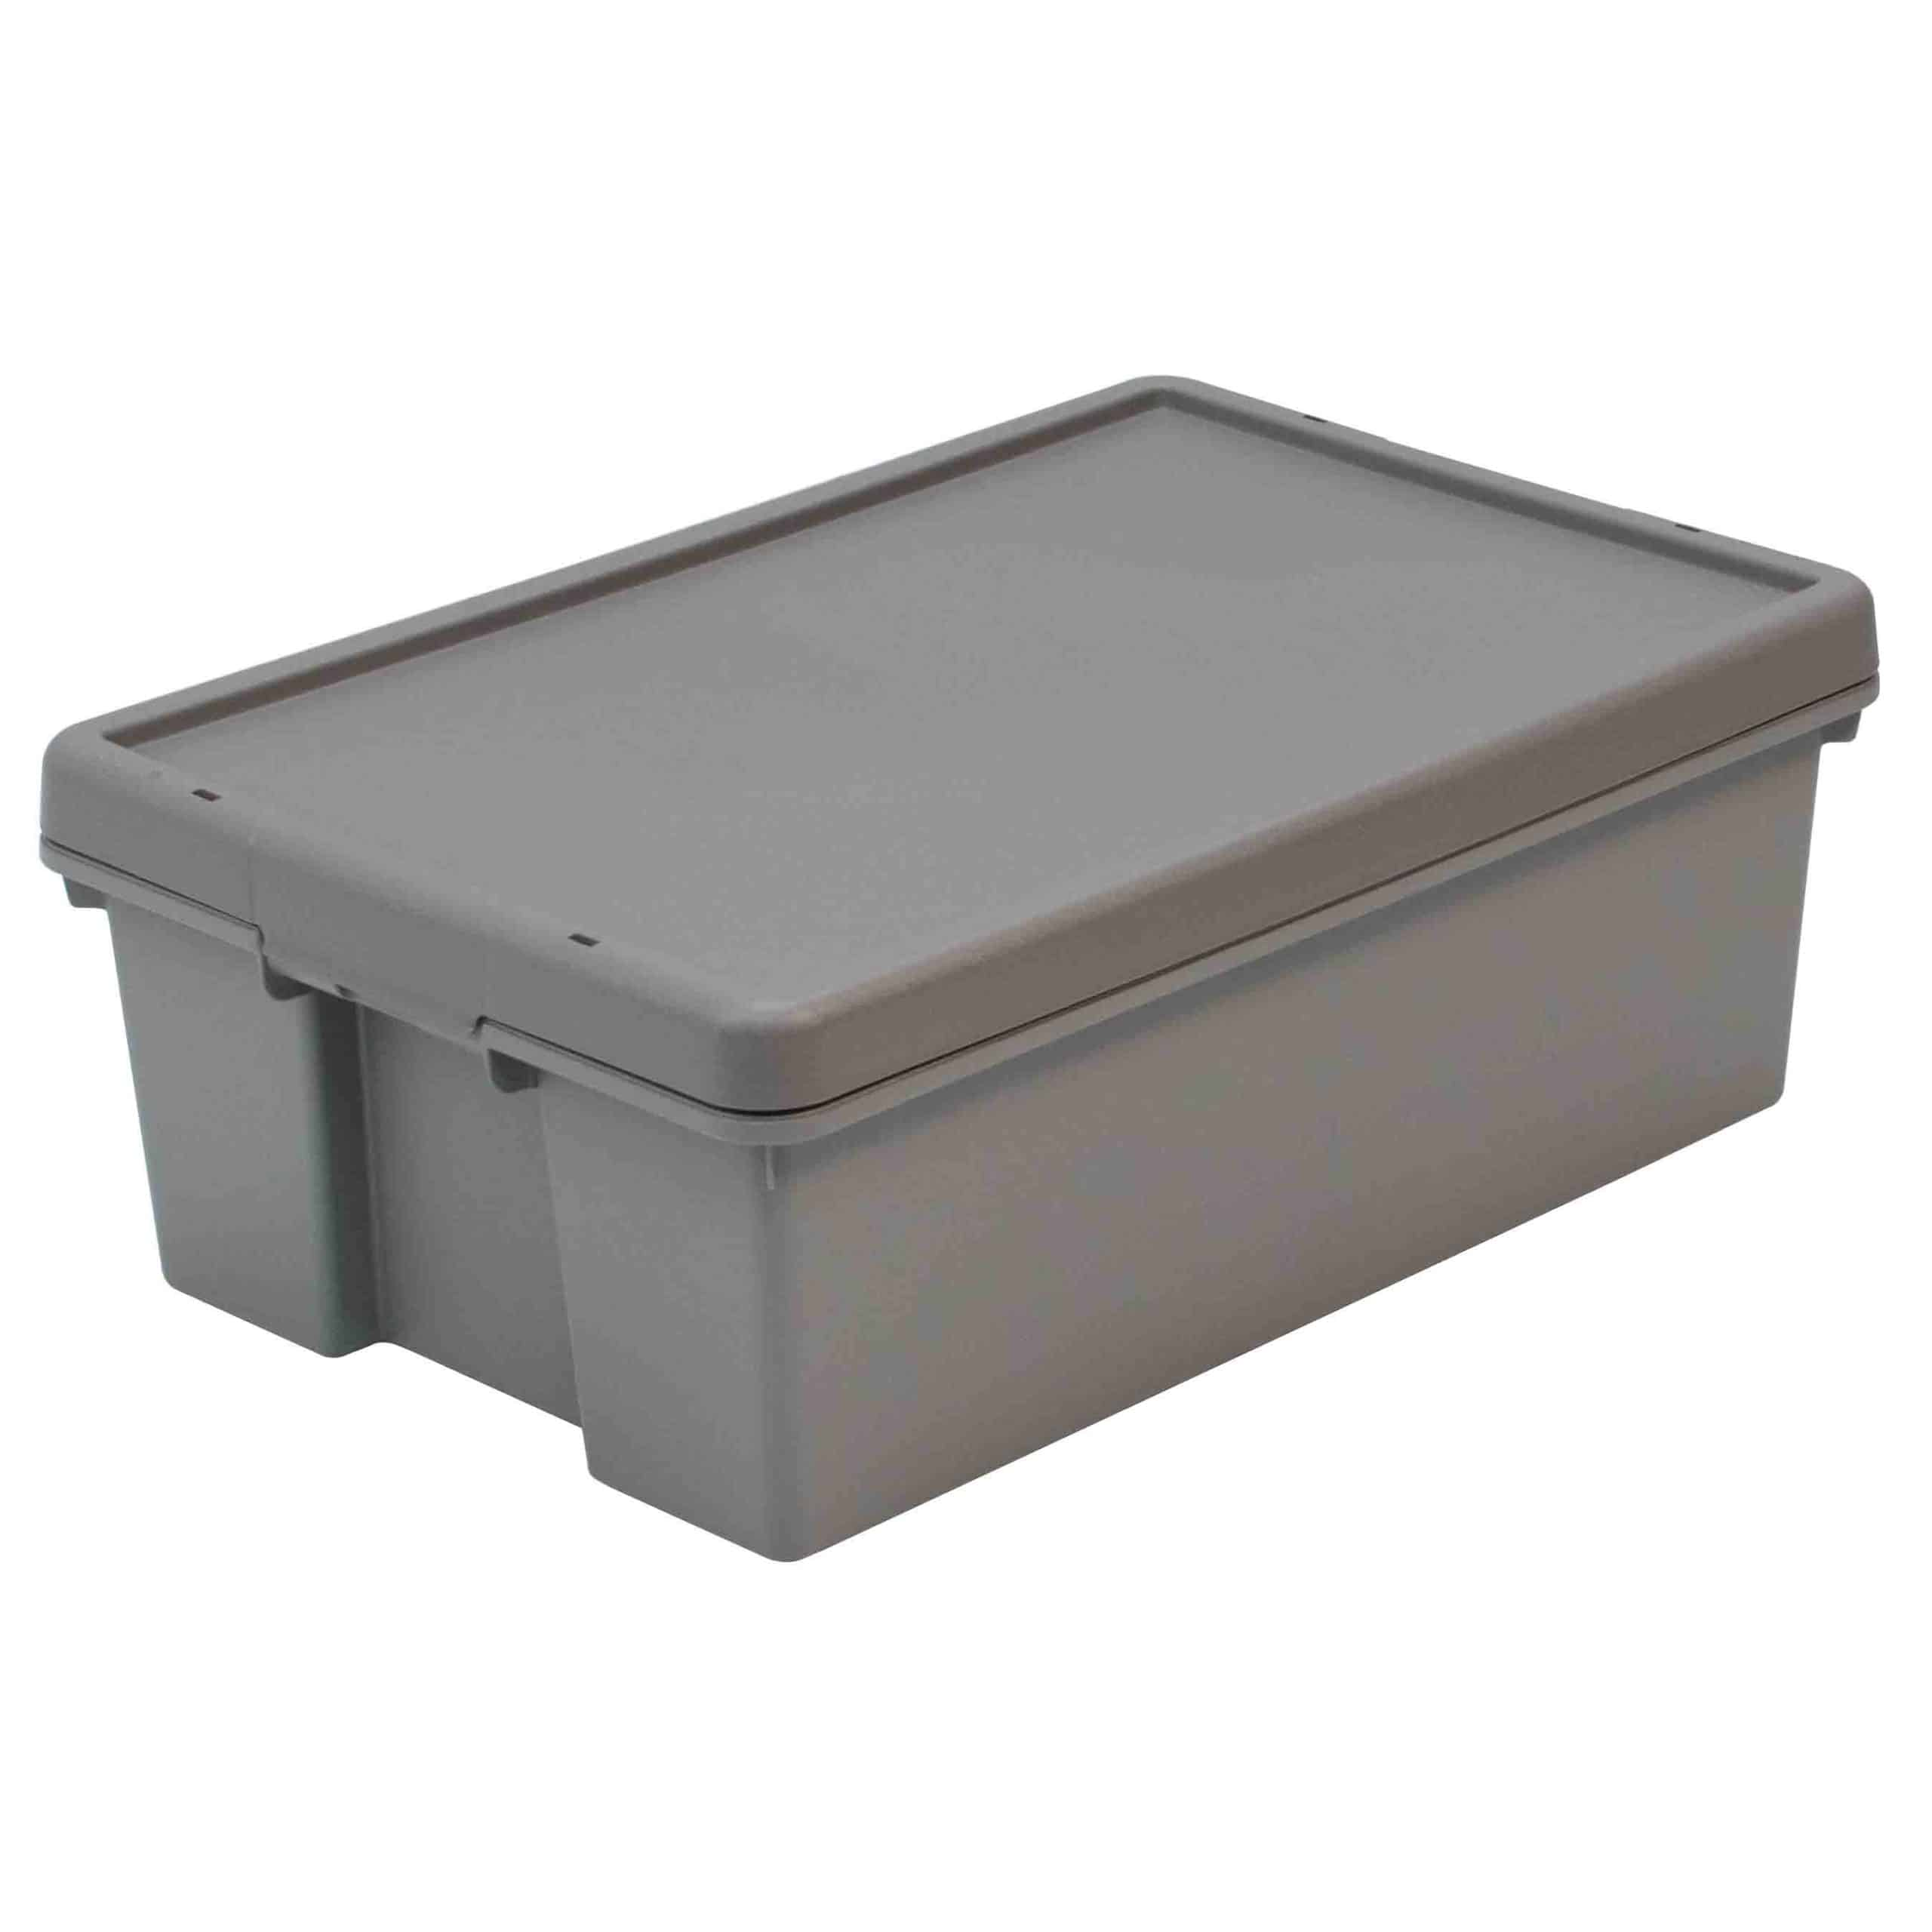 36 Litre Upcycled Plastic Storage Box